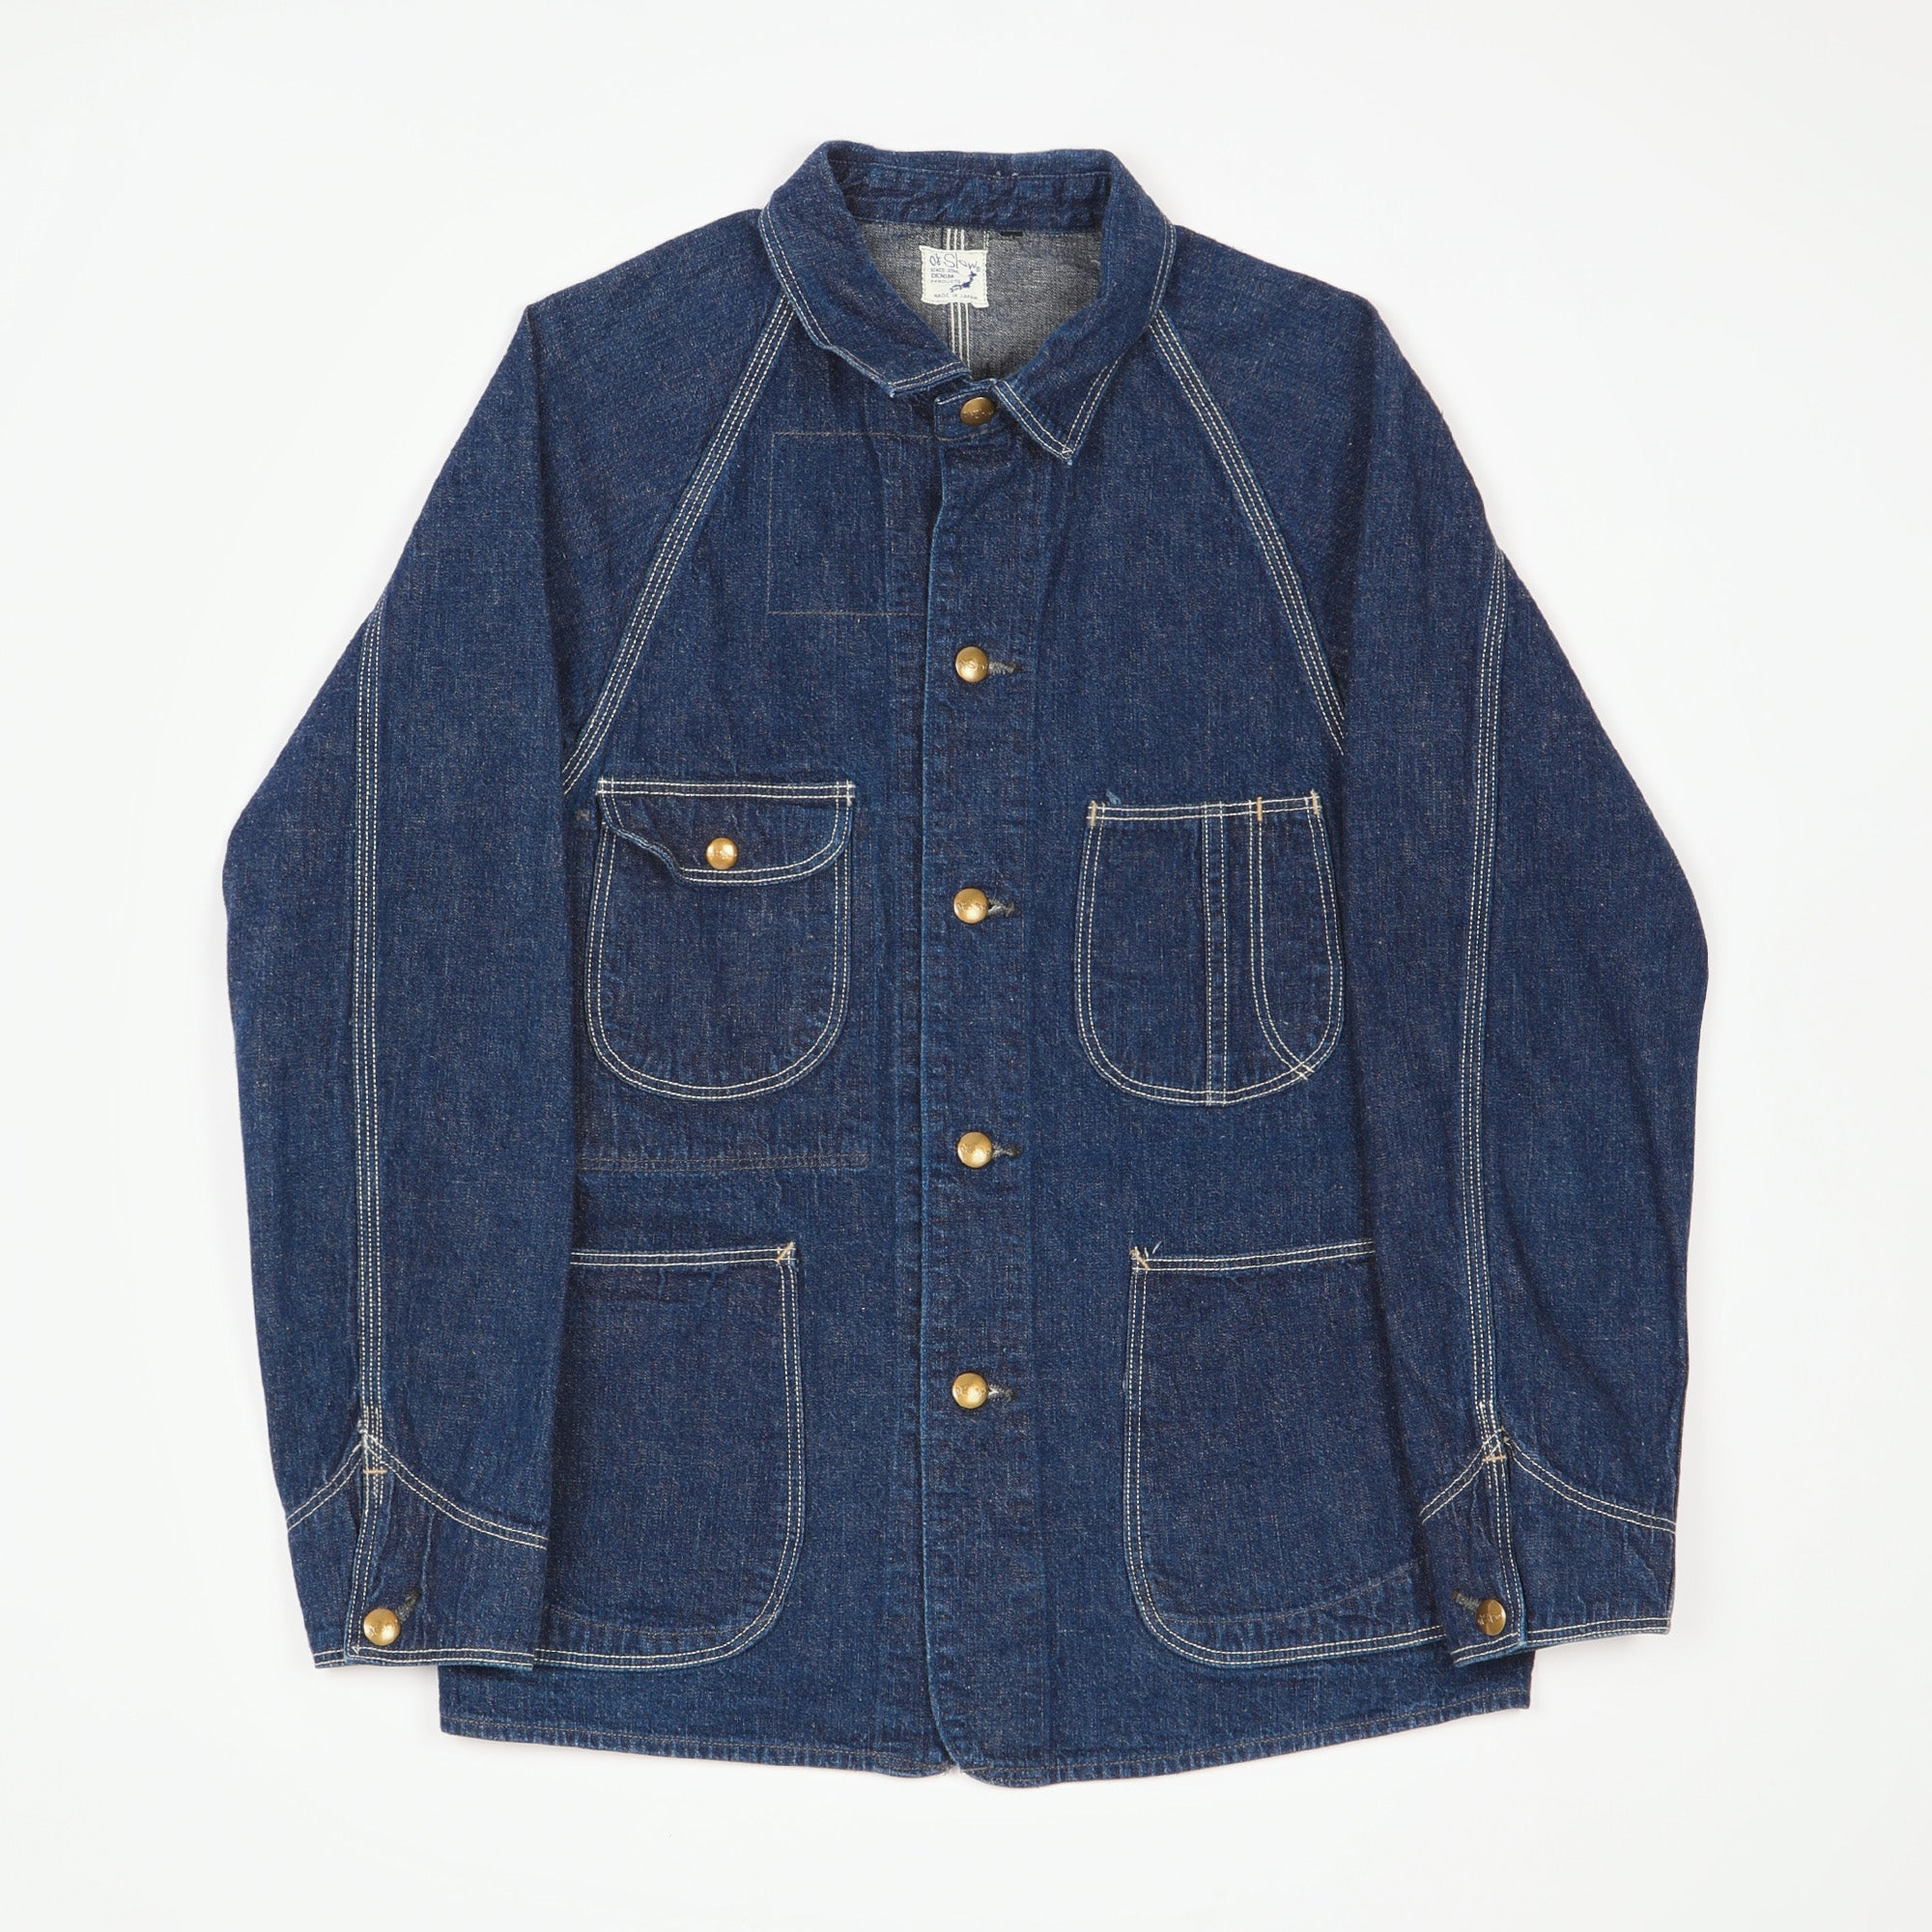 1950s Denim Chore Jacket